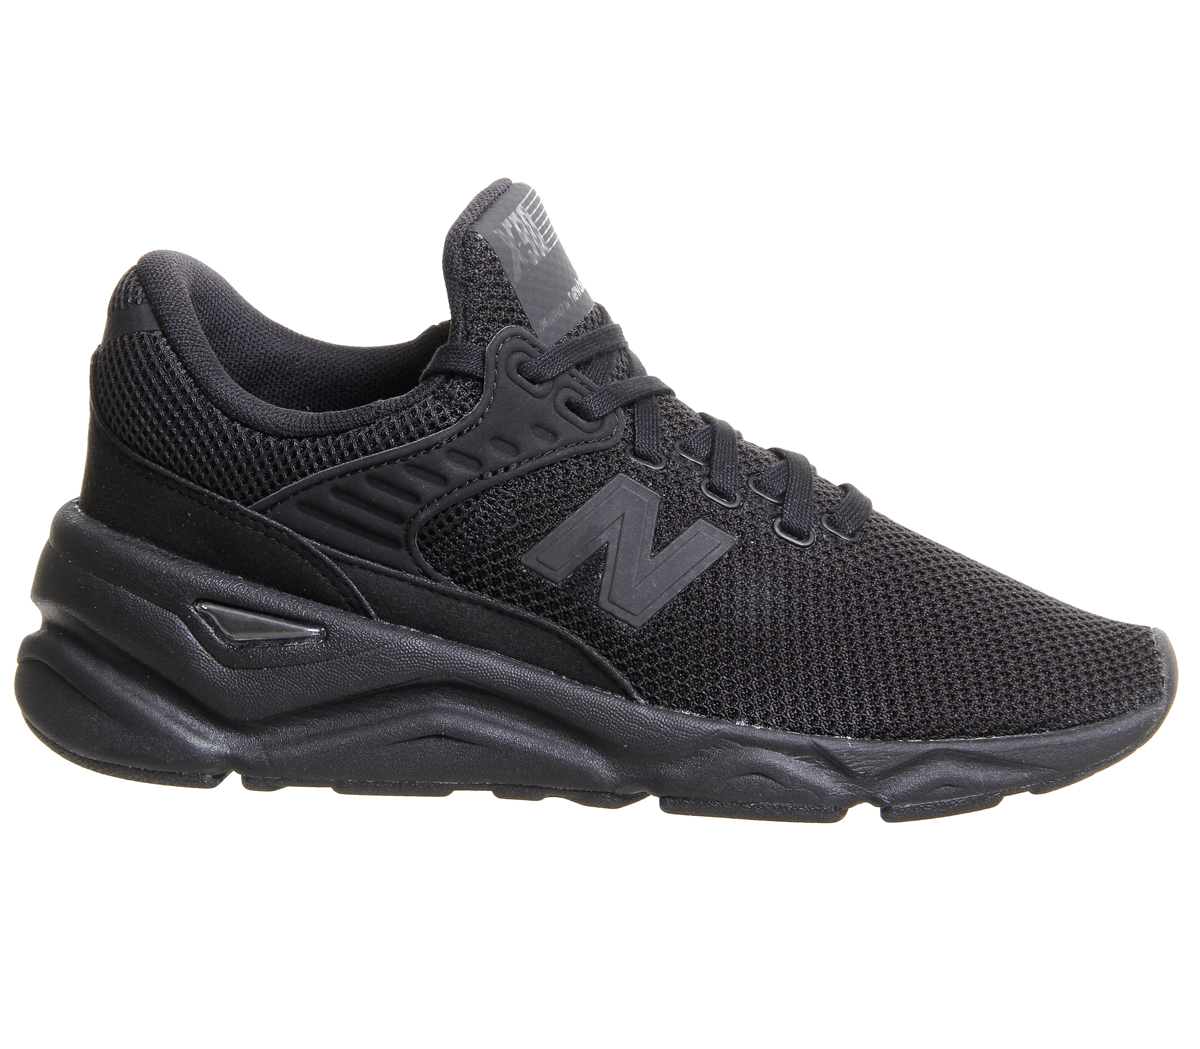 a7f0c8d503c New-Balance-X90-Baskets-Noir-Mono-Baskets-Chaussures miniature